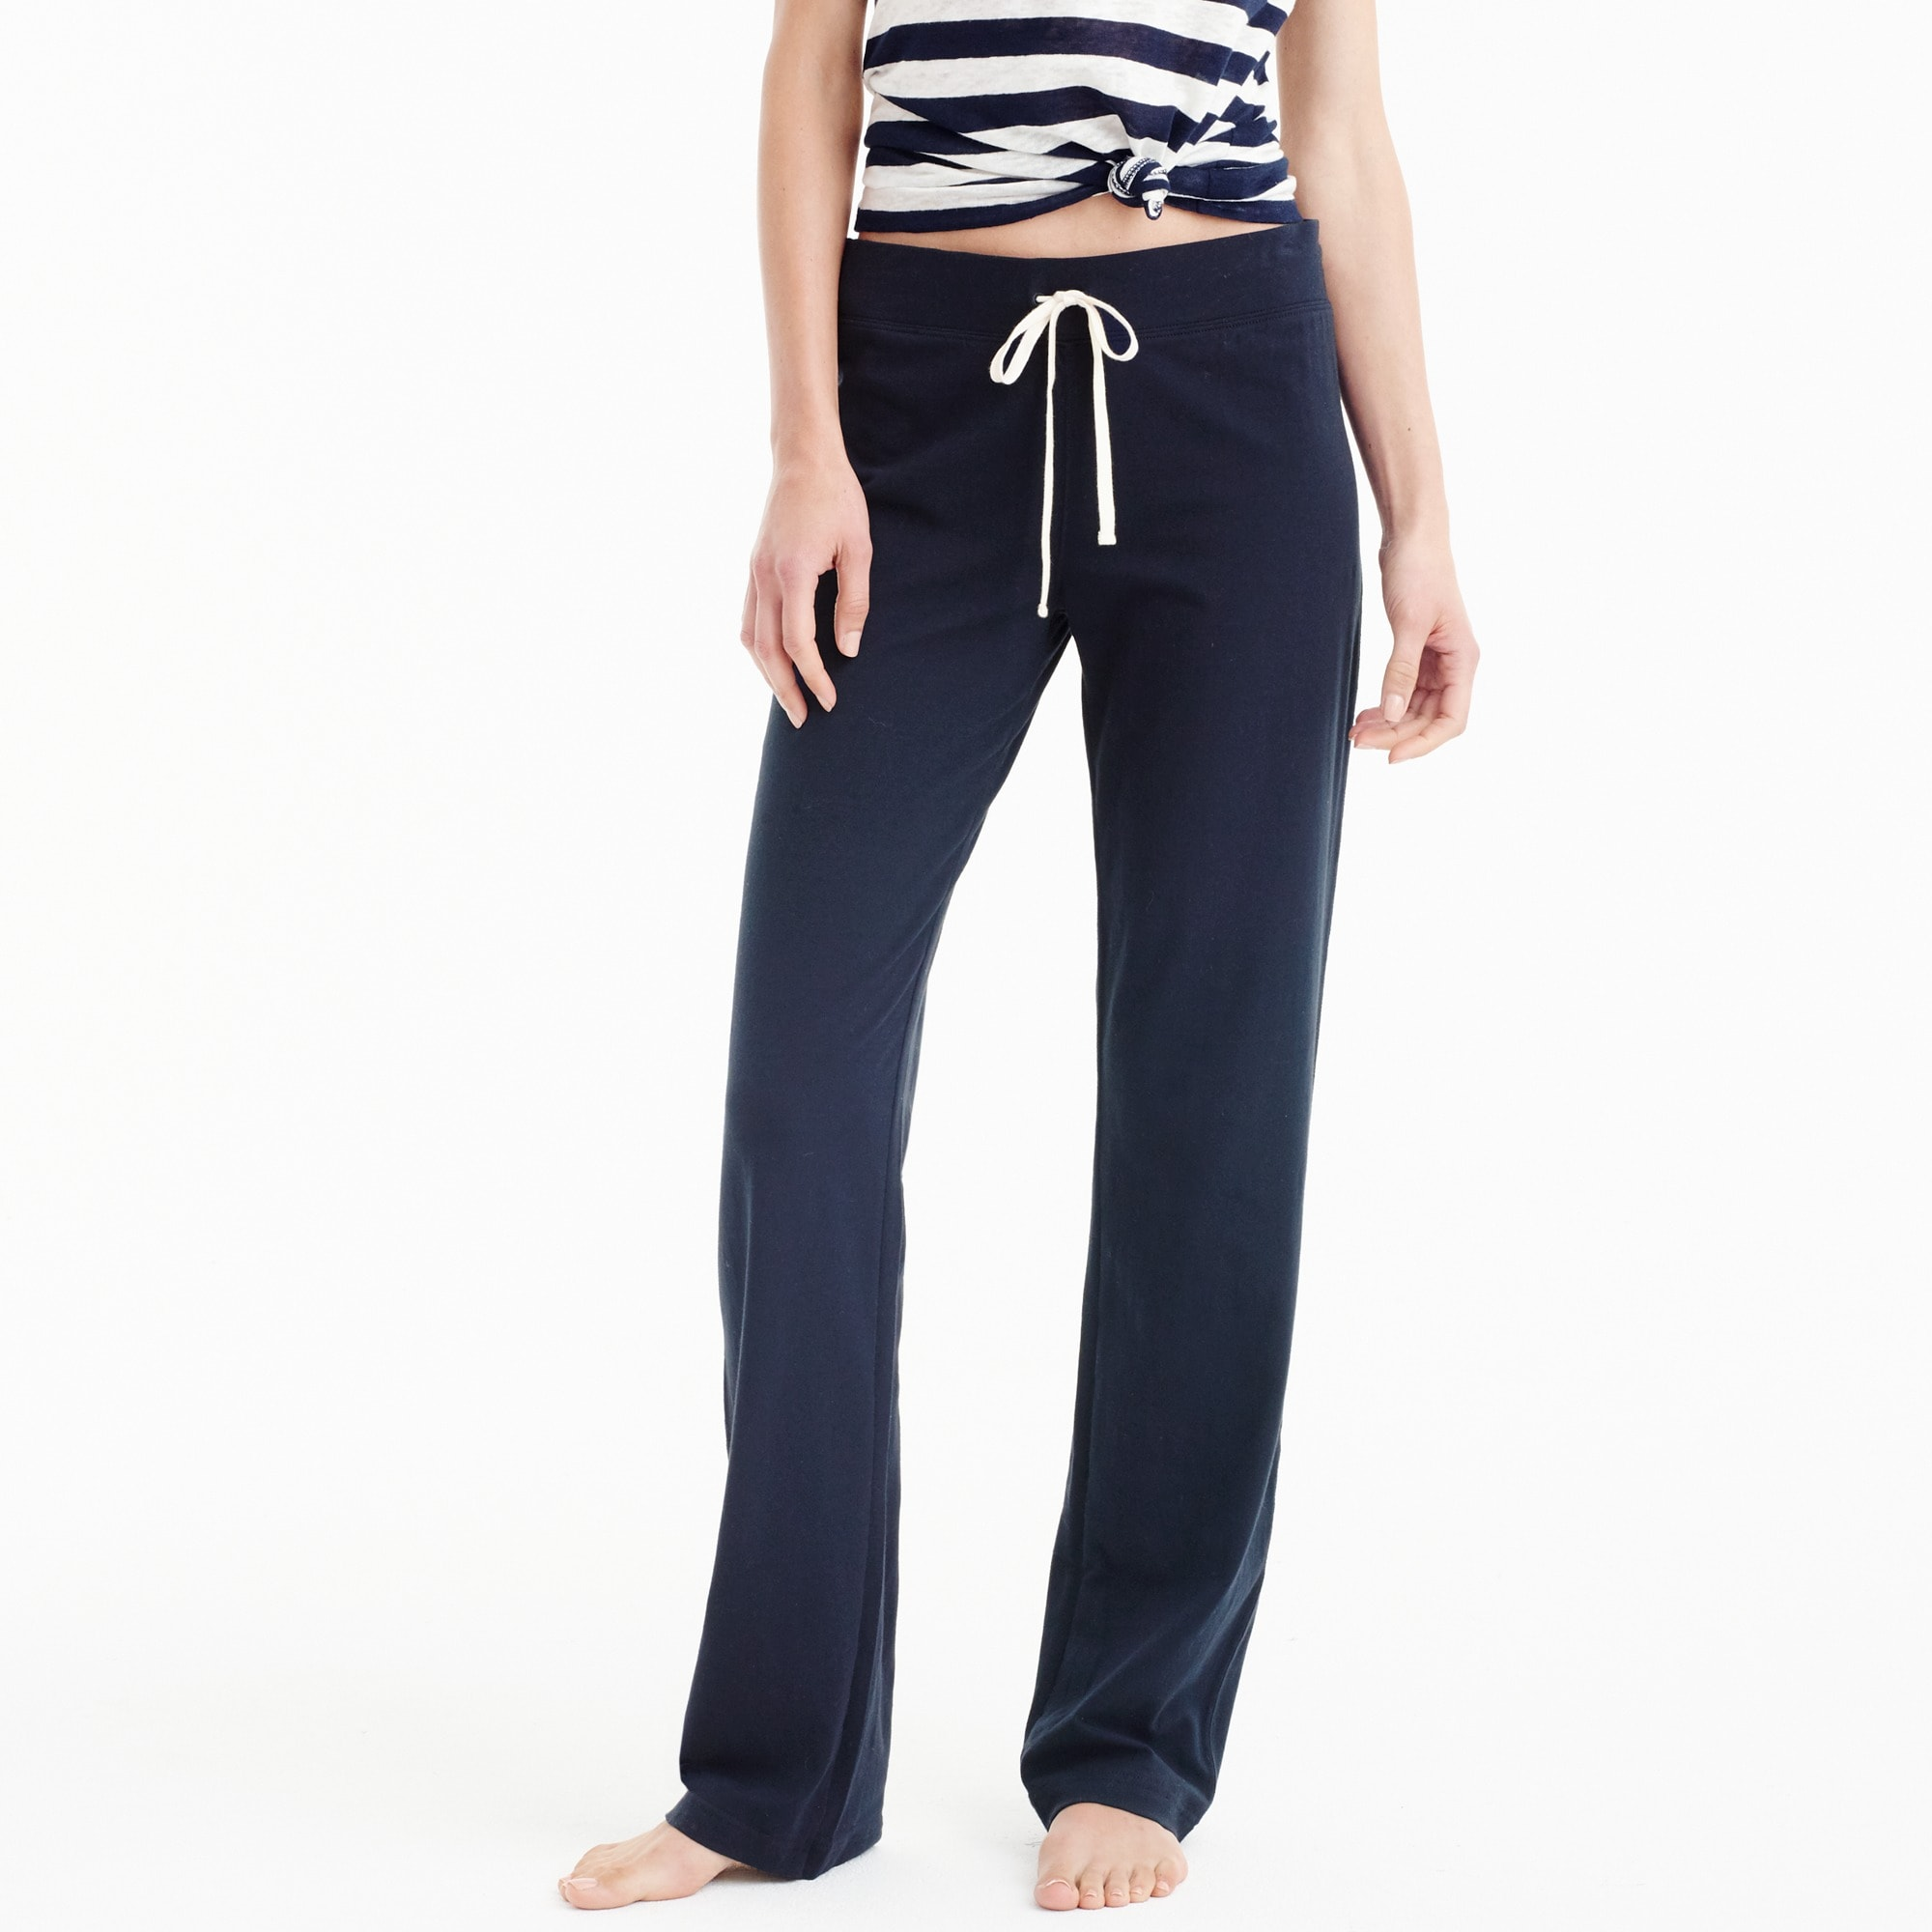 women's dreamy pant - women's lounge